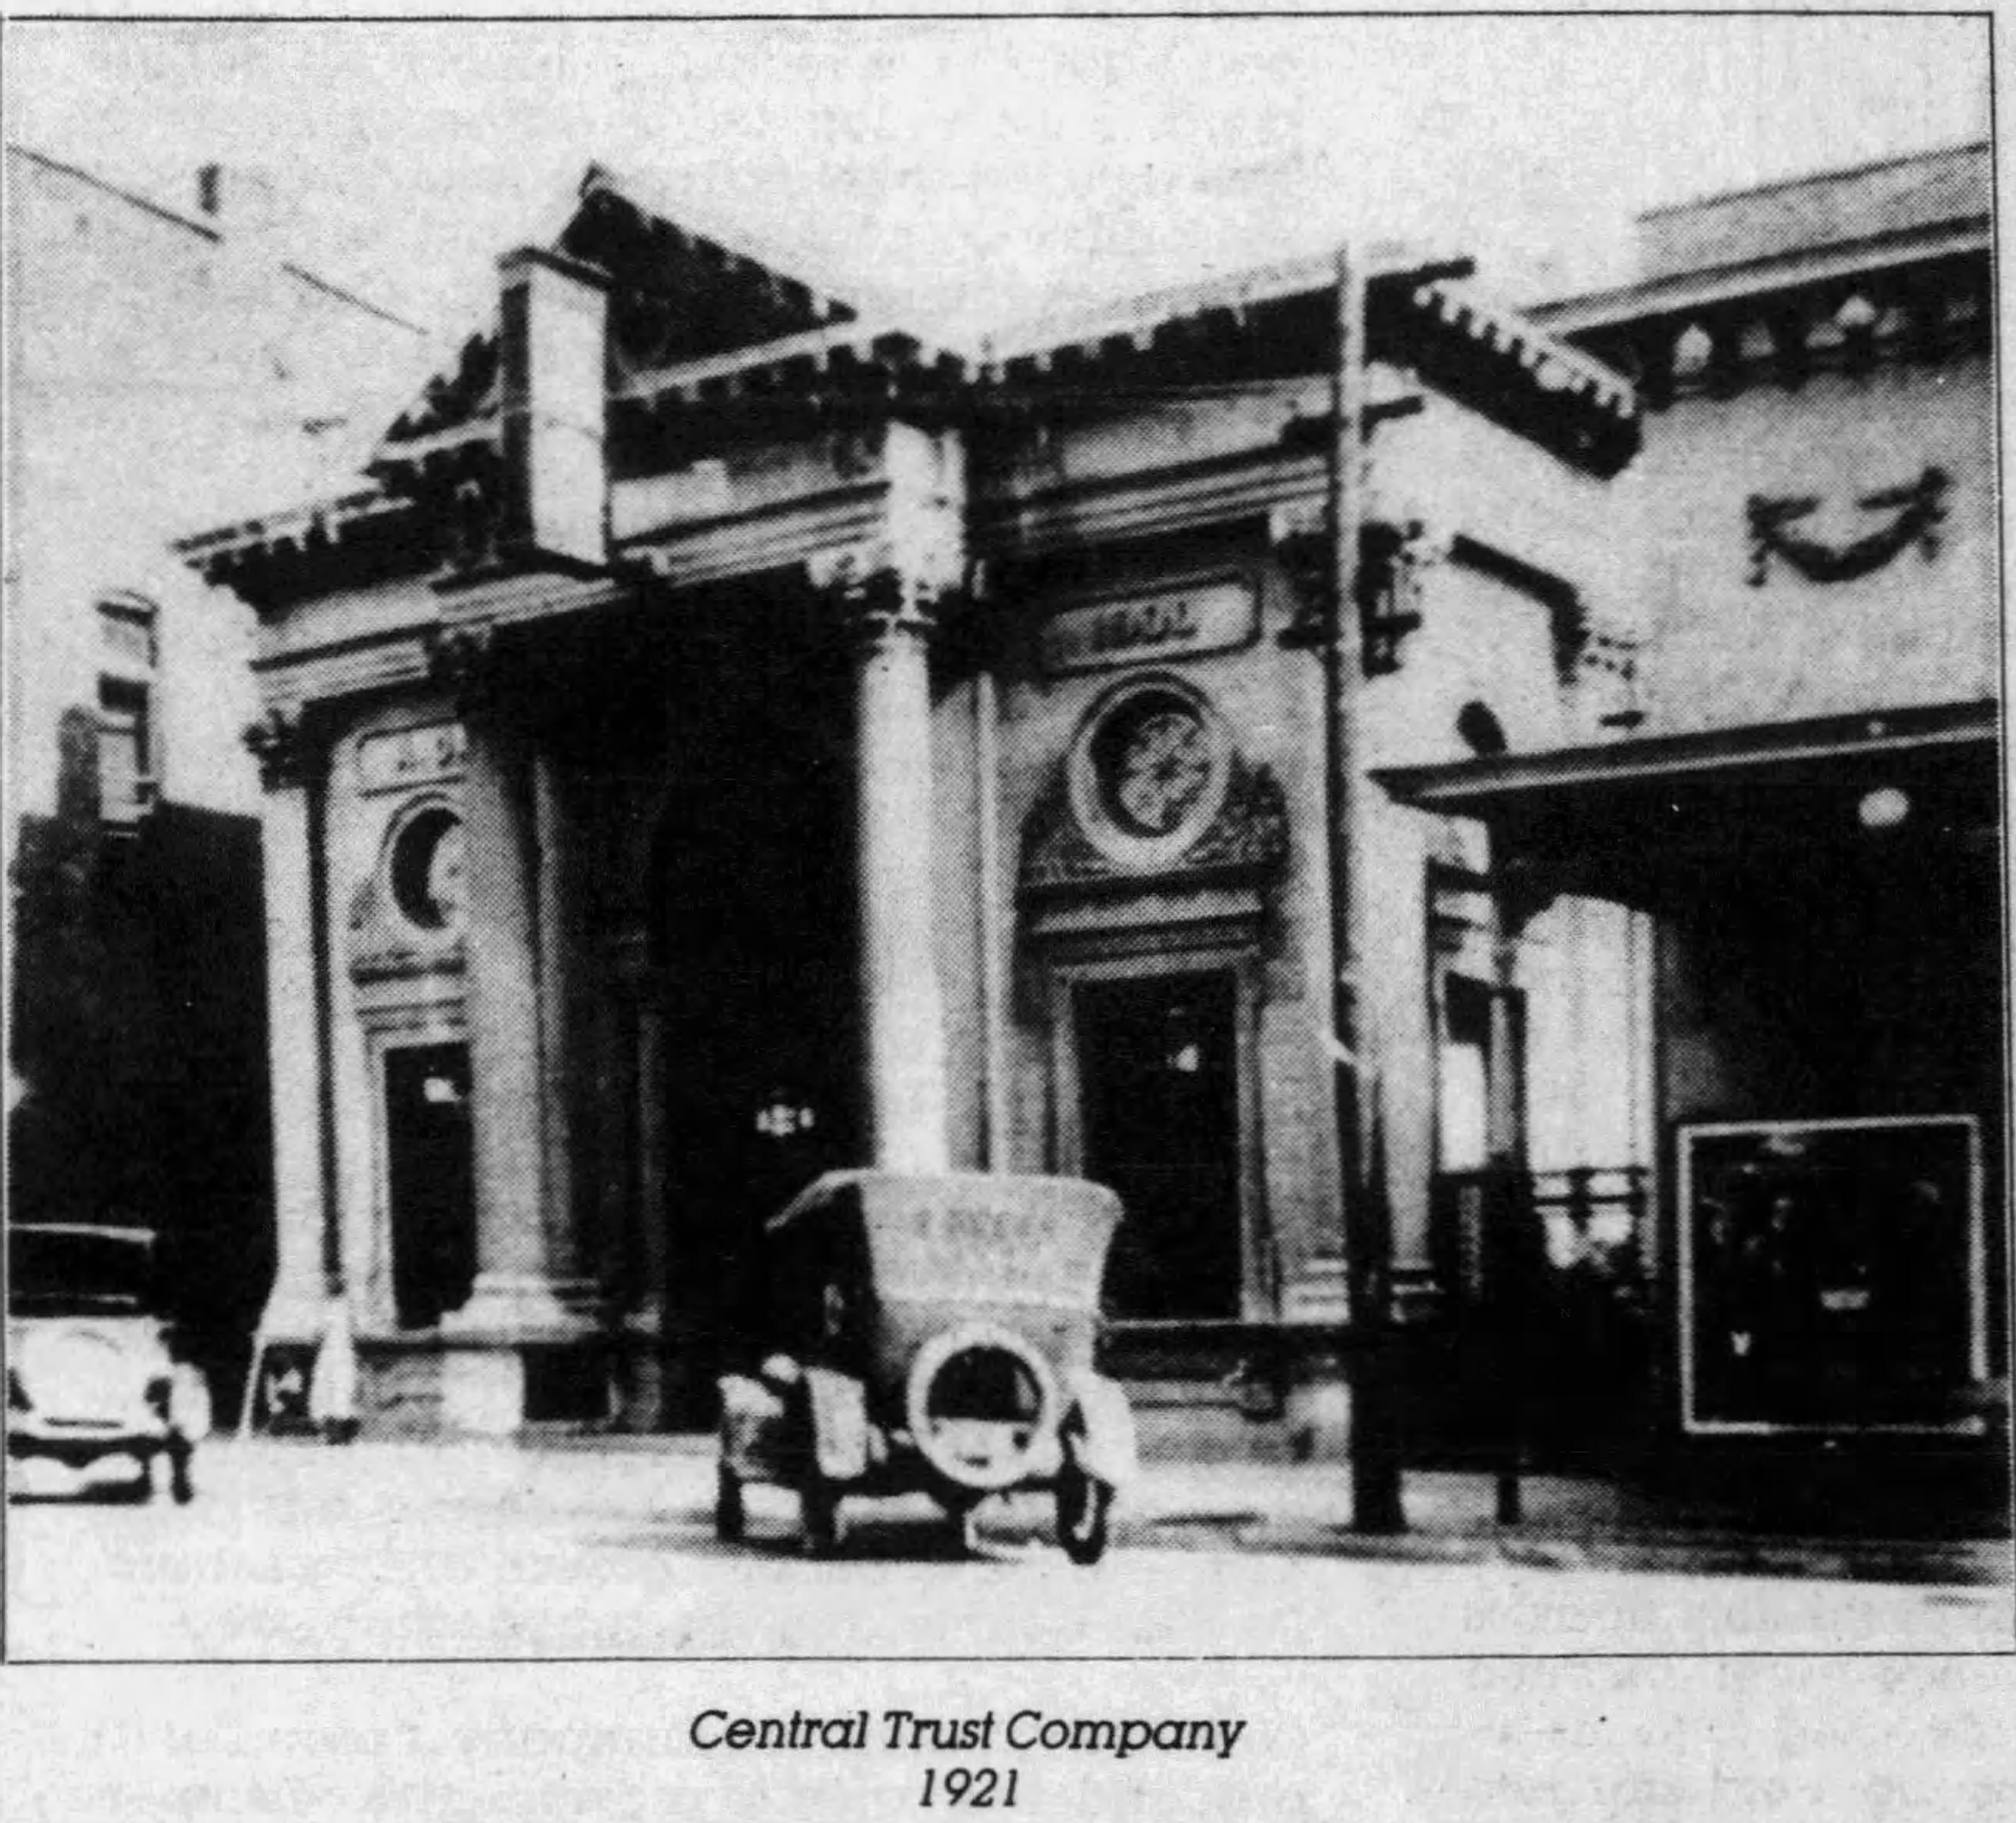 Central Trust Company 1921